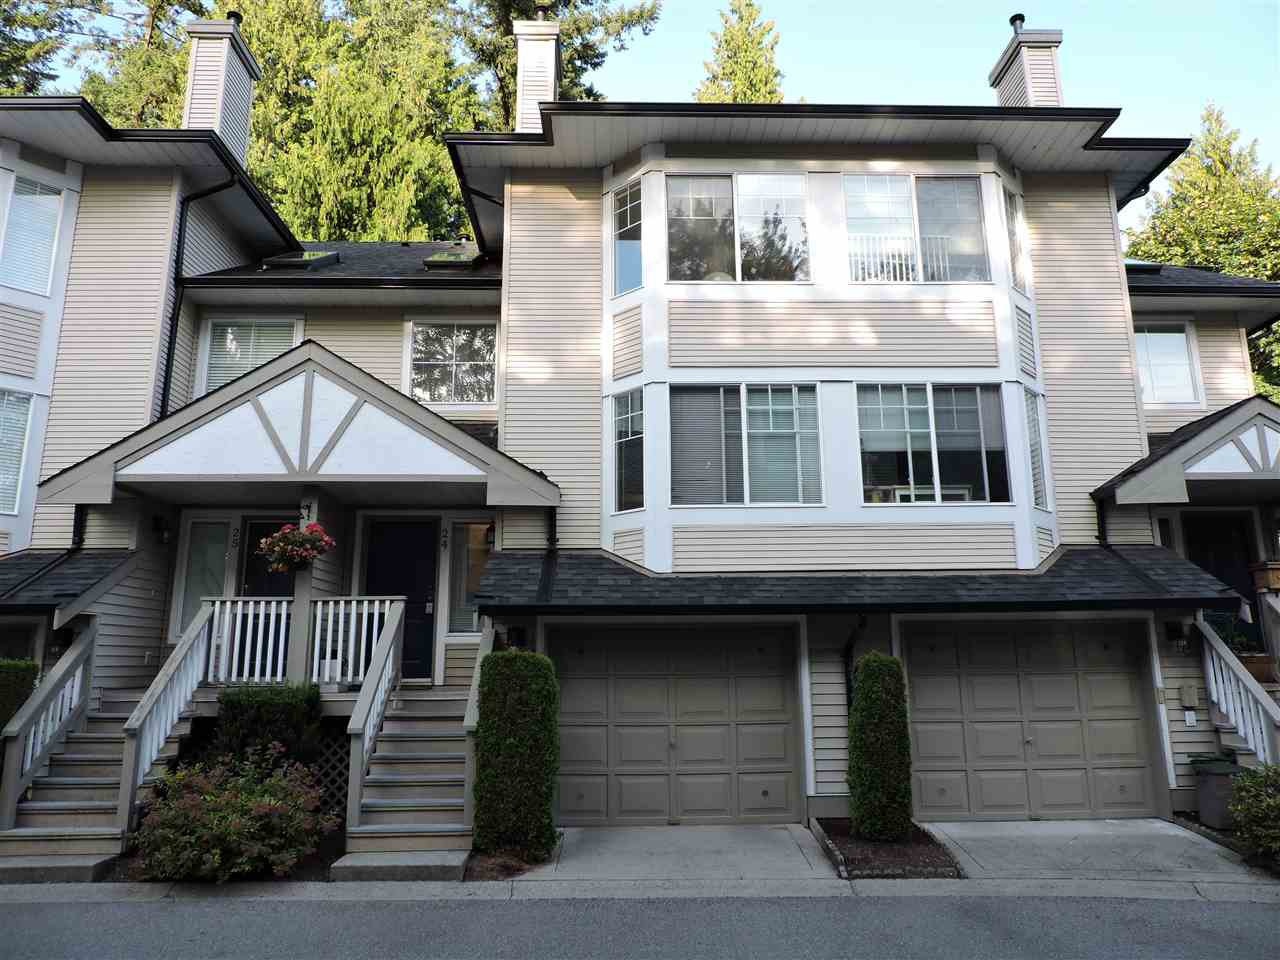 """Main Photo: 24 7640 BLOTT Street in Mission: Mission BC Townhouse for sale in """"AMBERLEA"""" : MLS®# R2469418"""